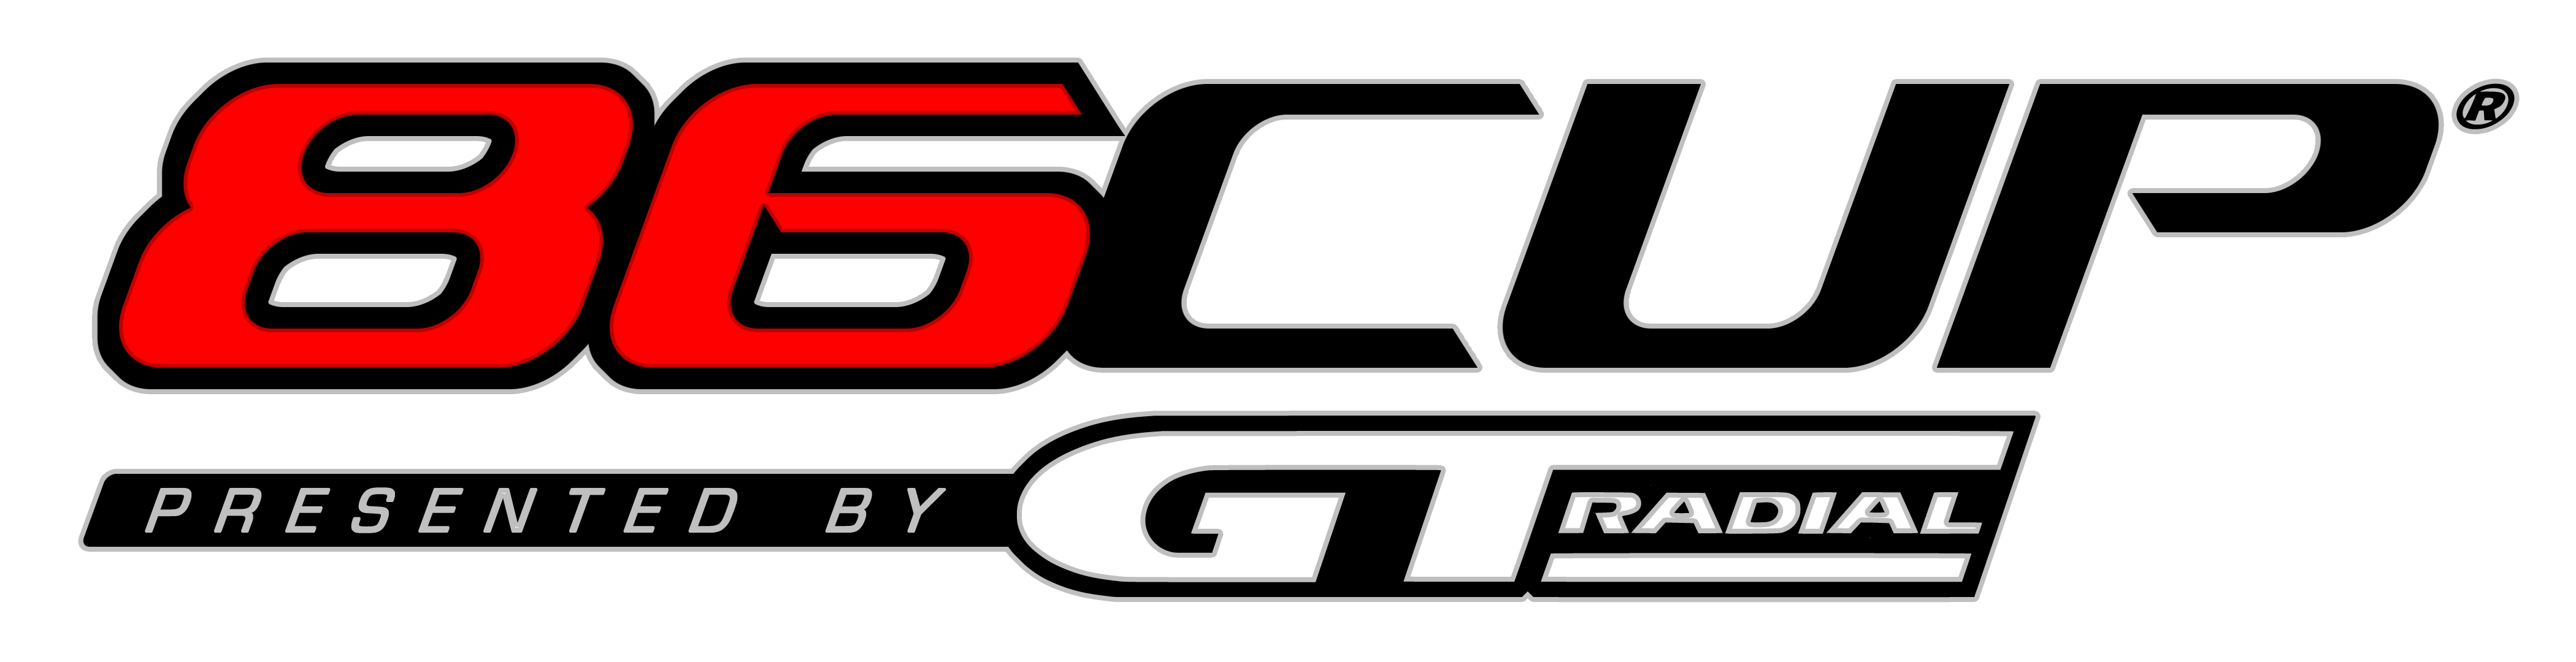 86 cup gtradial logo